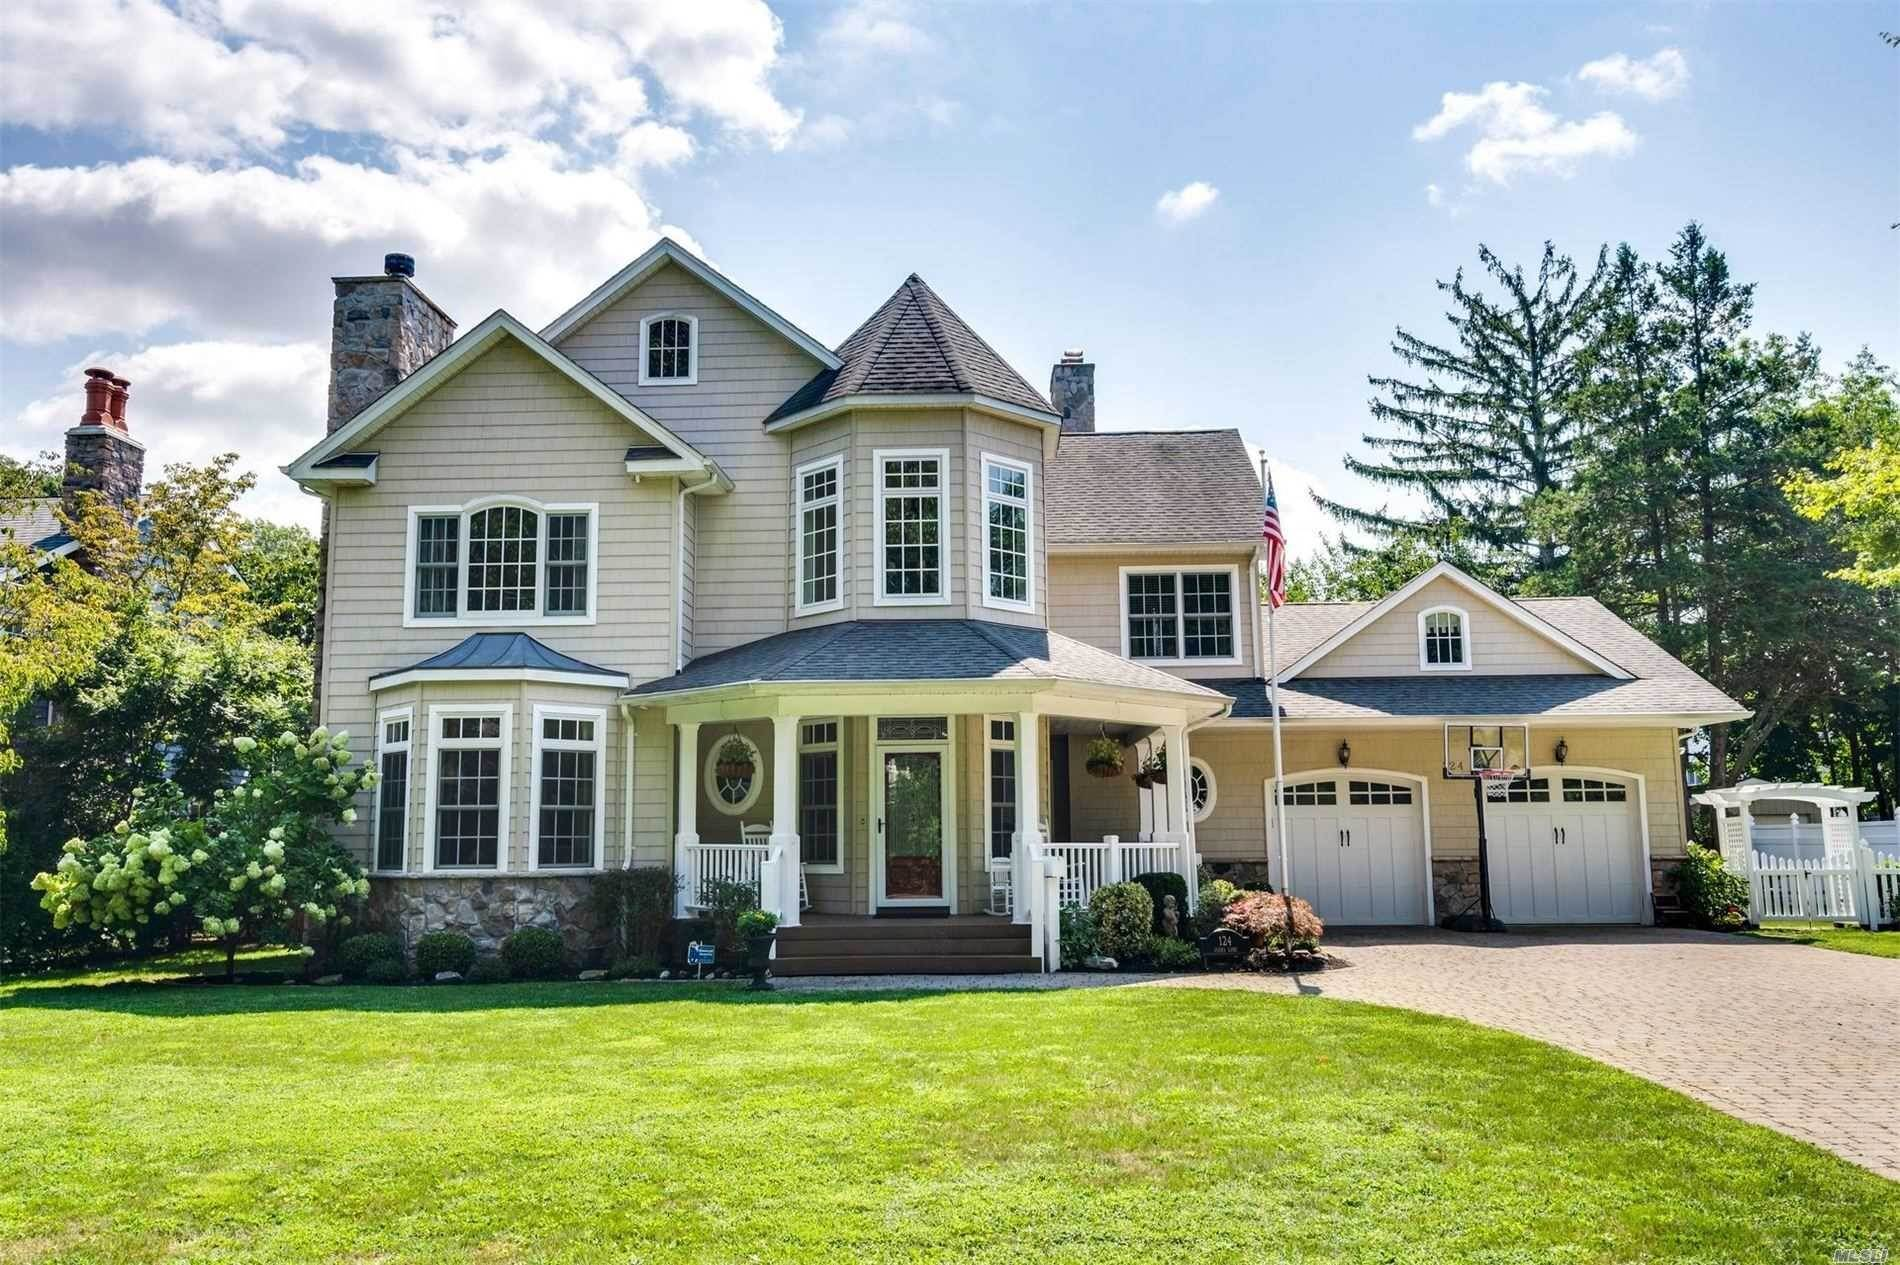 Residential for Sale at 124 Cocks Lane, Locust Valley, NY 11560 Locust Valley, New York 11560 United States